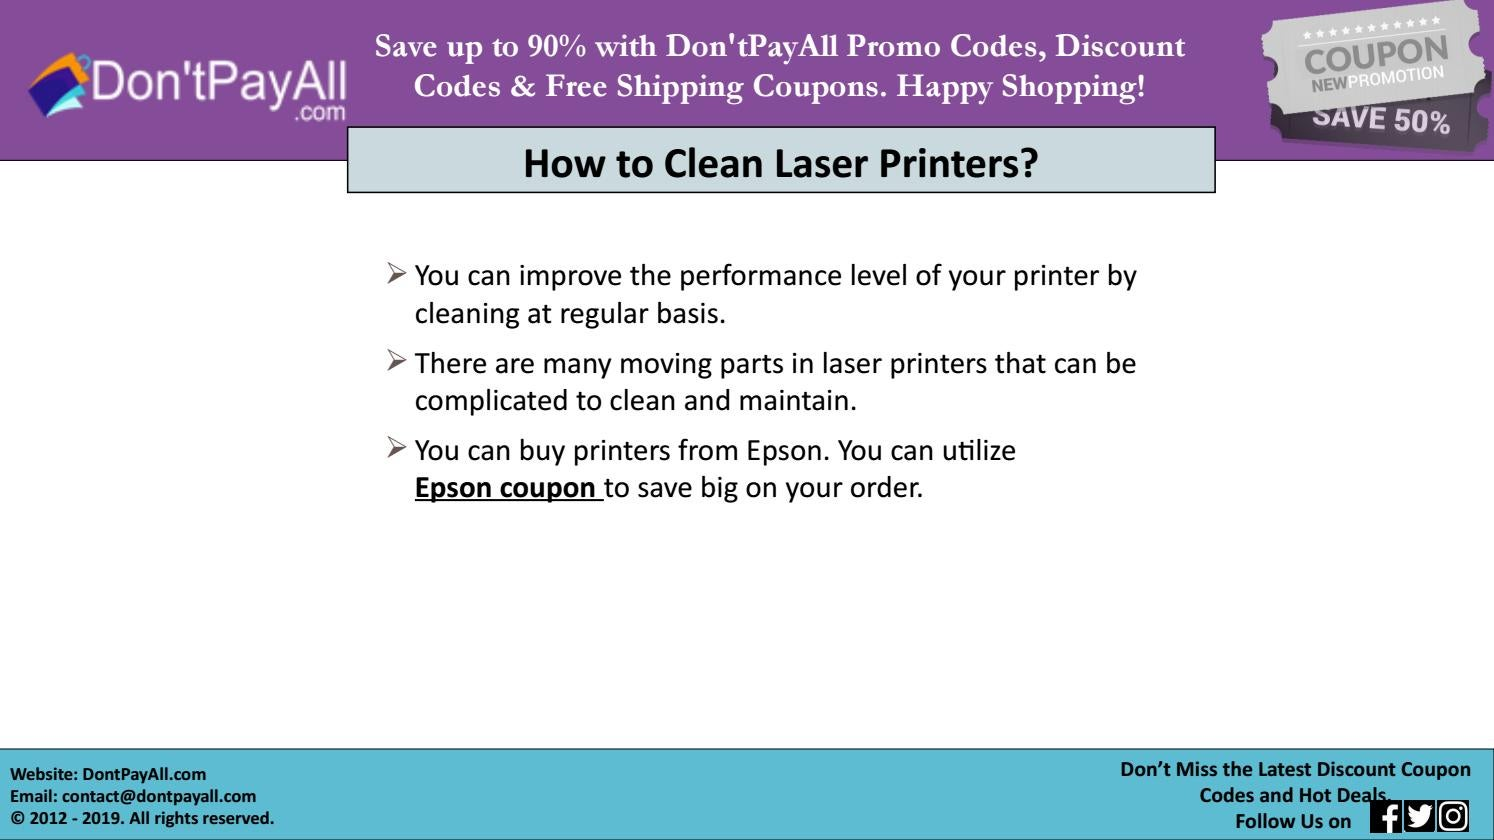 Online Savings On Printers With Epson Discount Code By Dontpayallcoupons Issuu